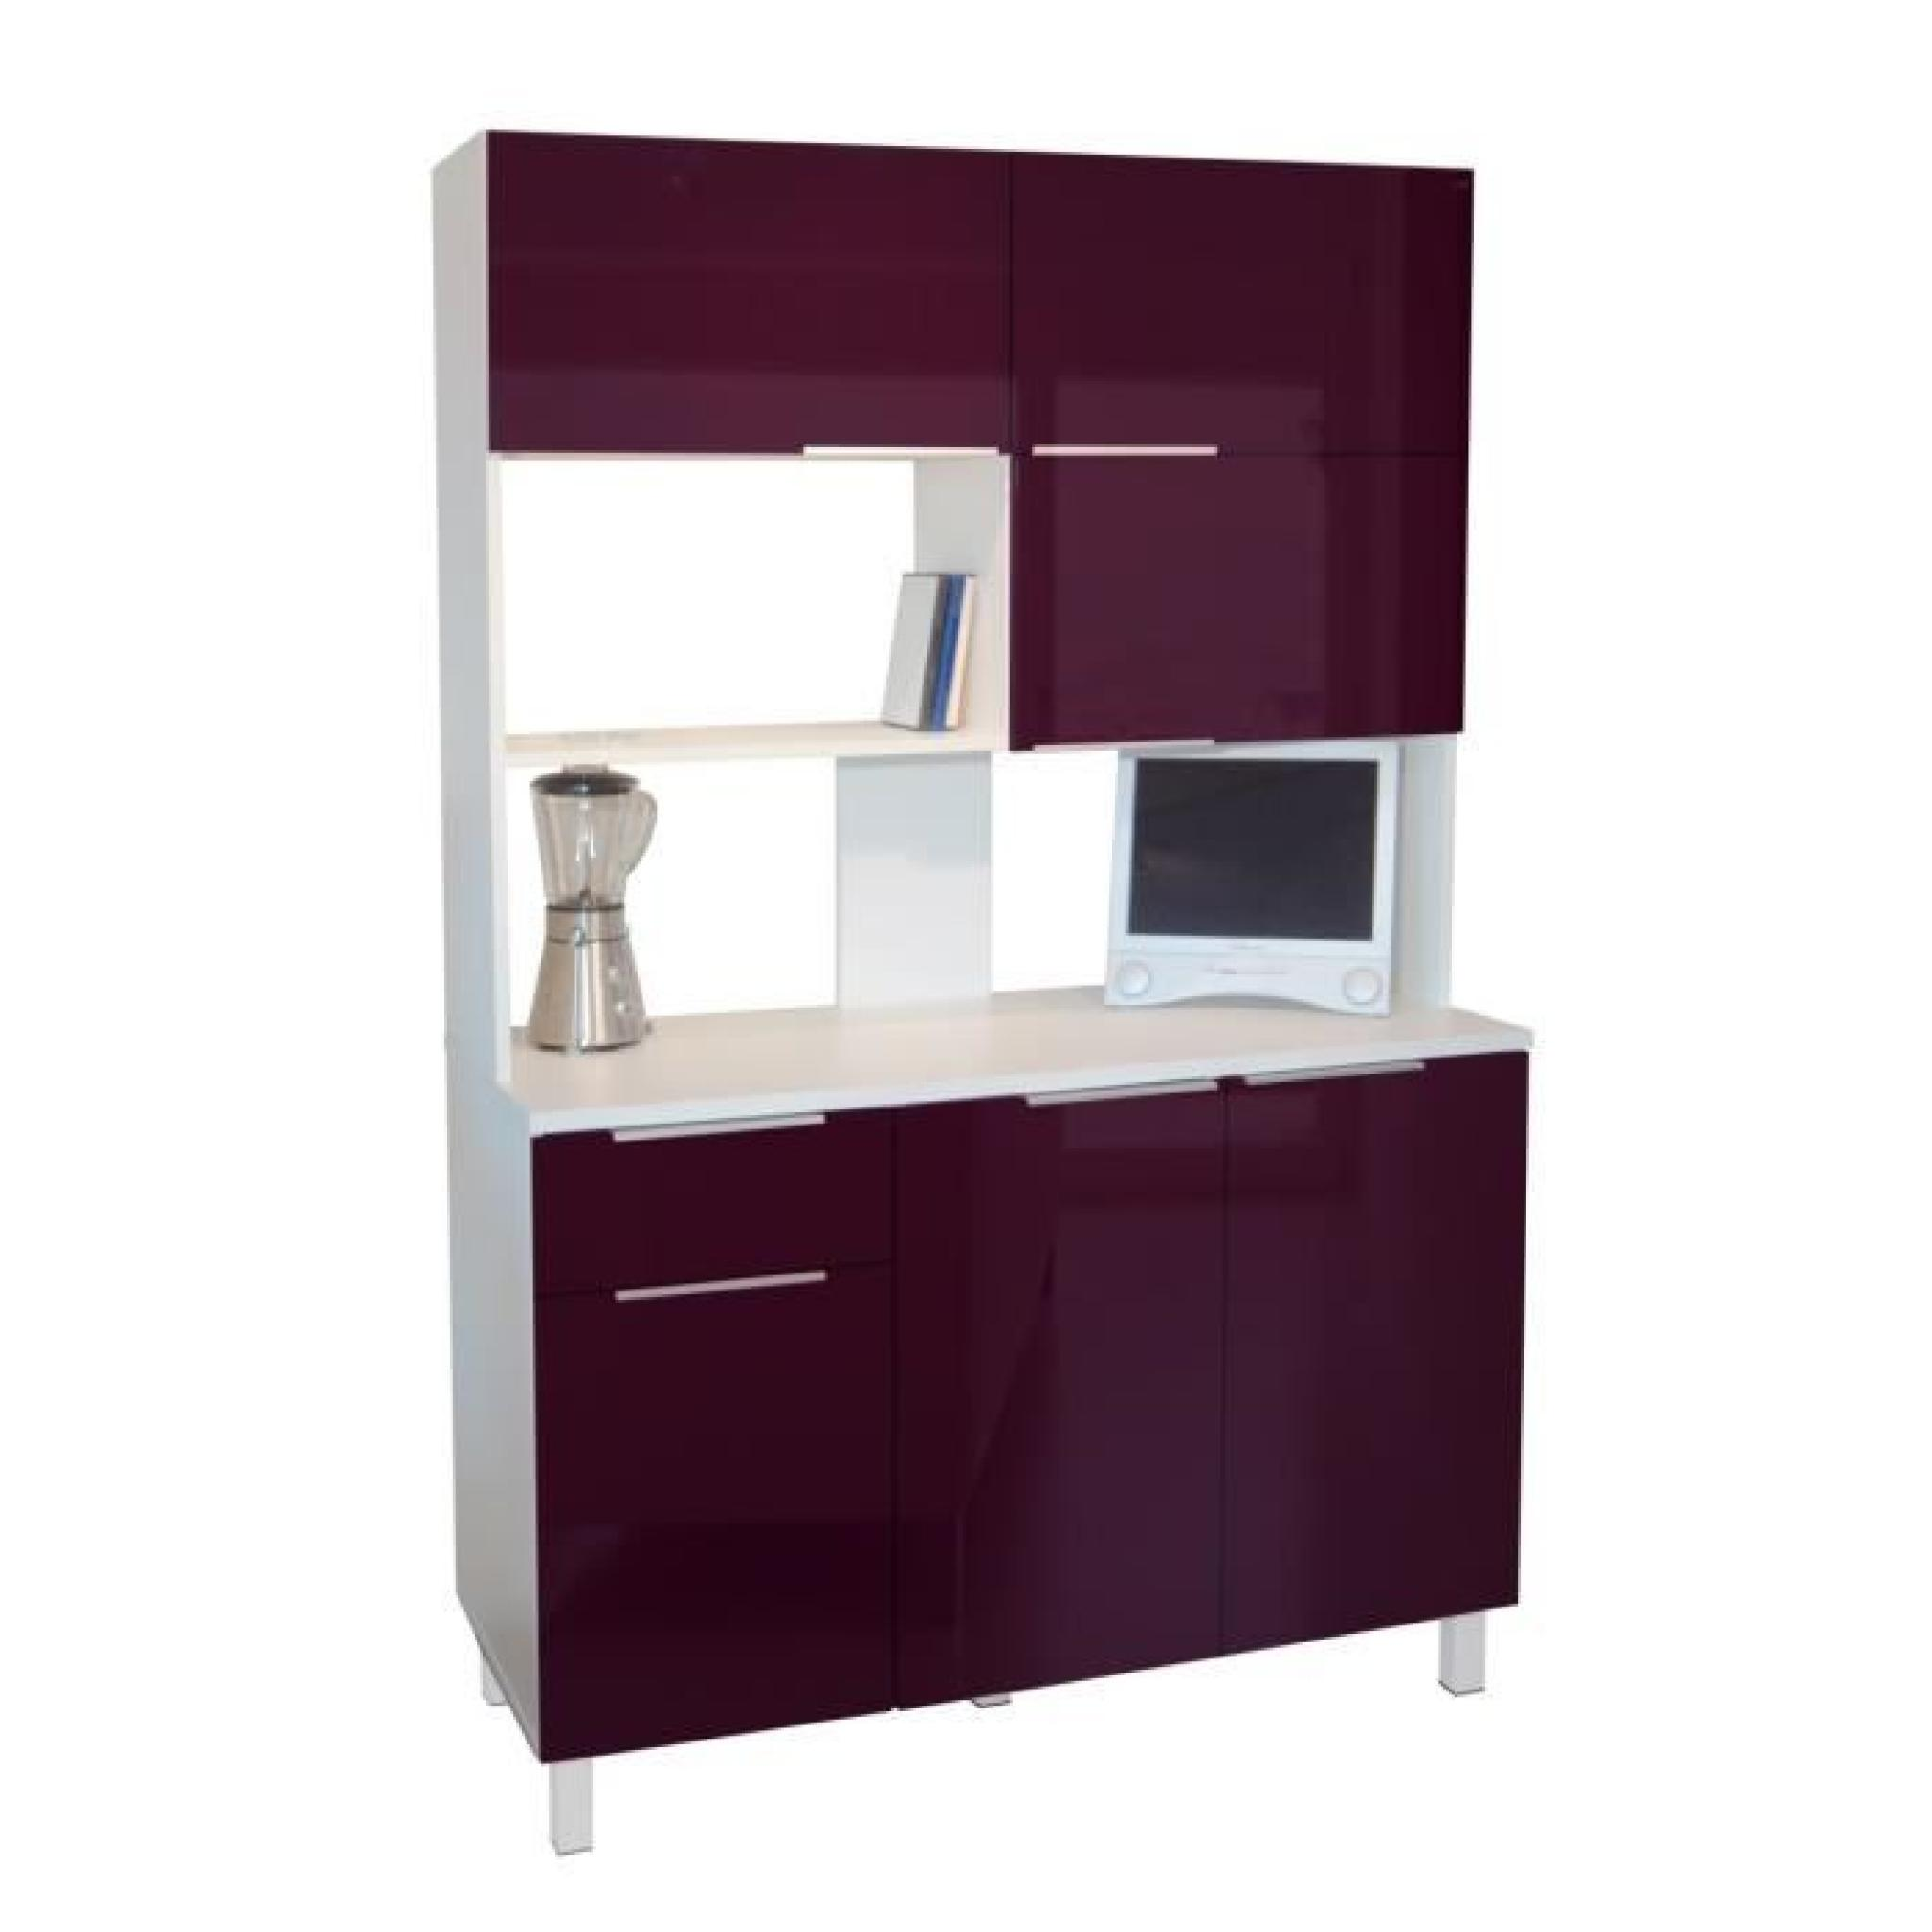 lova buffet de cuisine 120 cm aubergine haute brillance. Black Bedroom Furniture Sets. Home Design Ideas